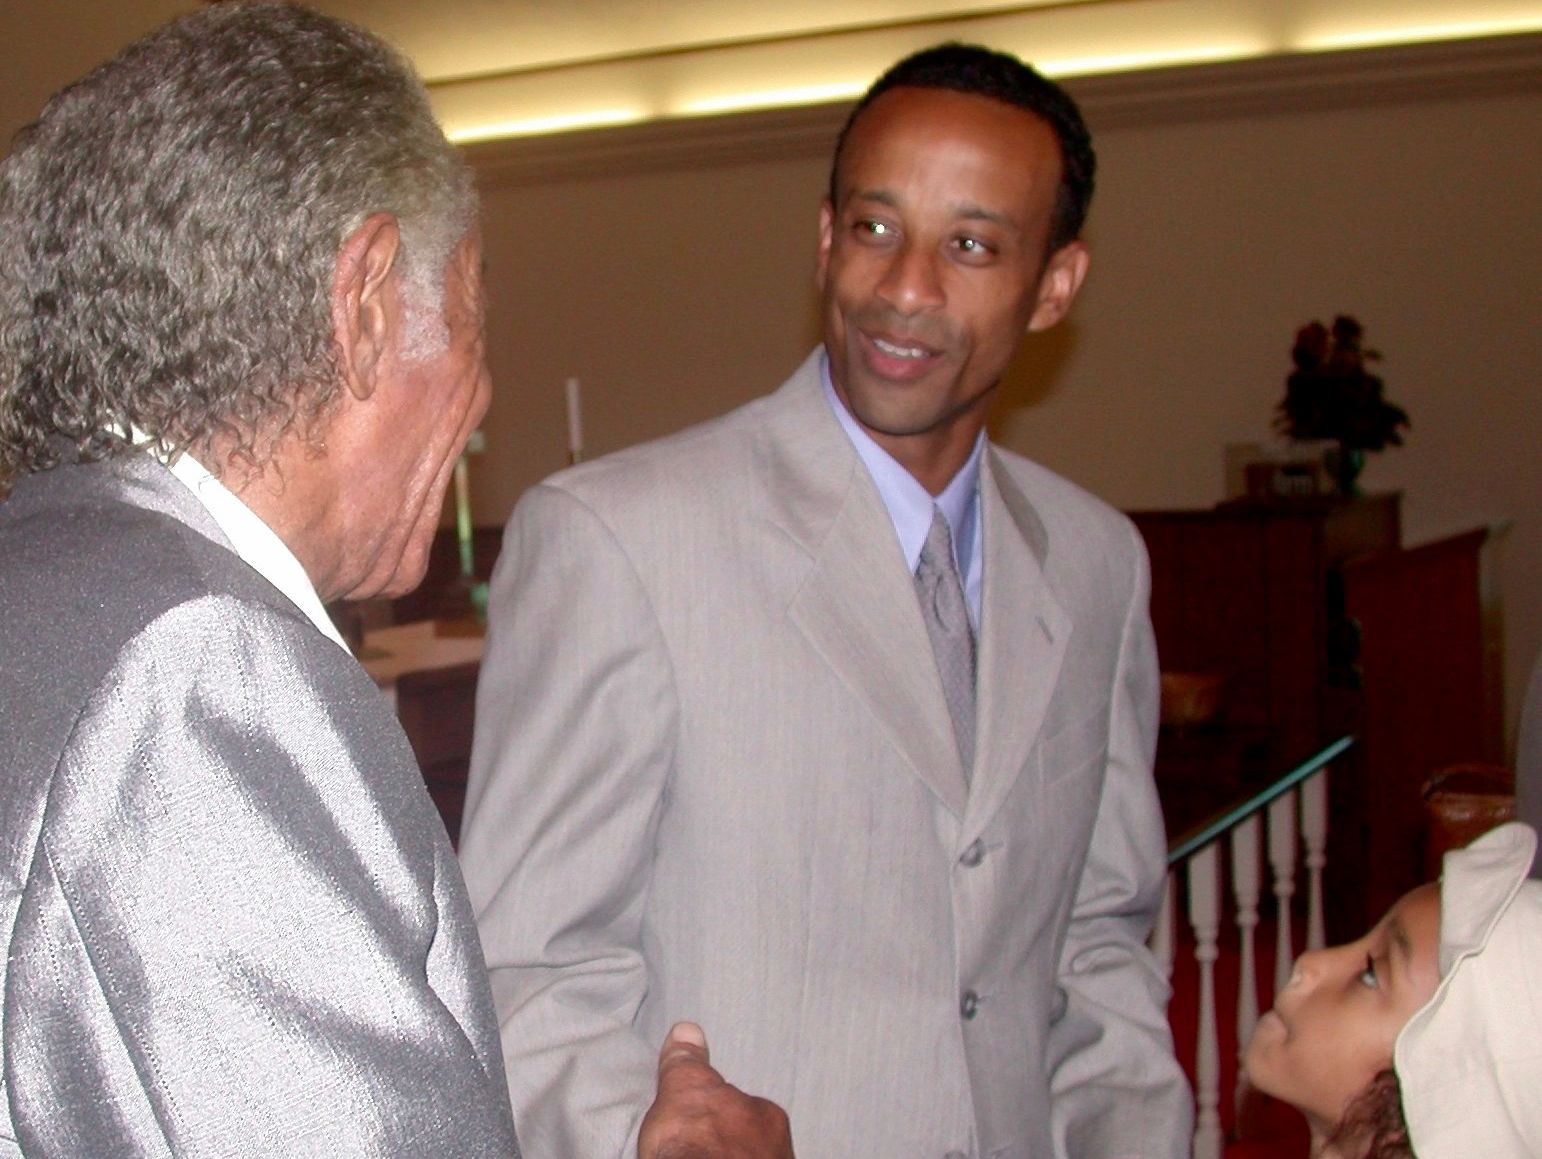 JMU women's basketball coach Kenny Brooks was the keynote speaker at the Waynesboro NAACP student banquet in 2003.